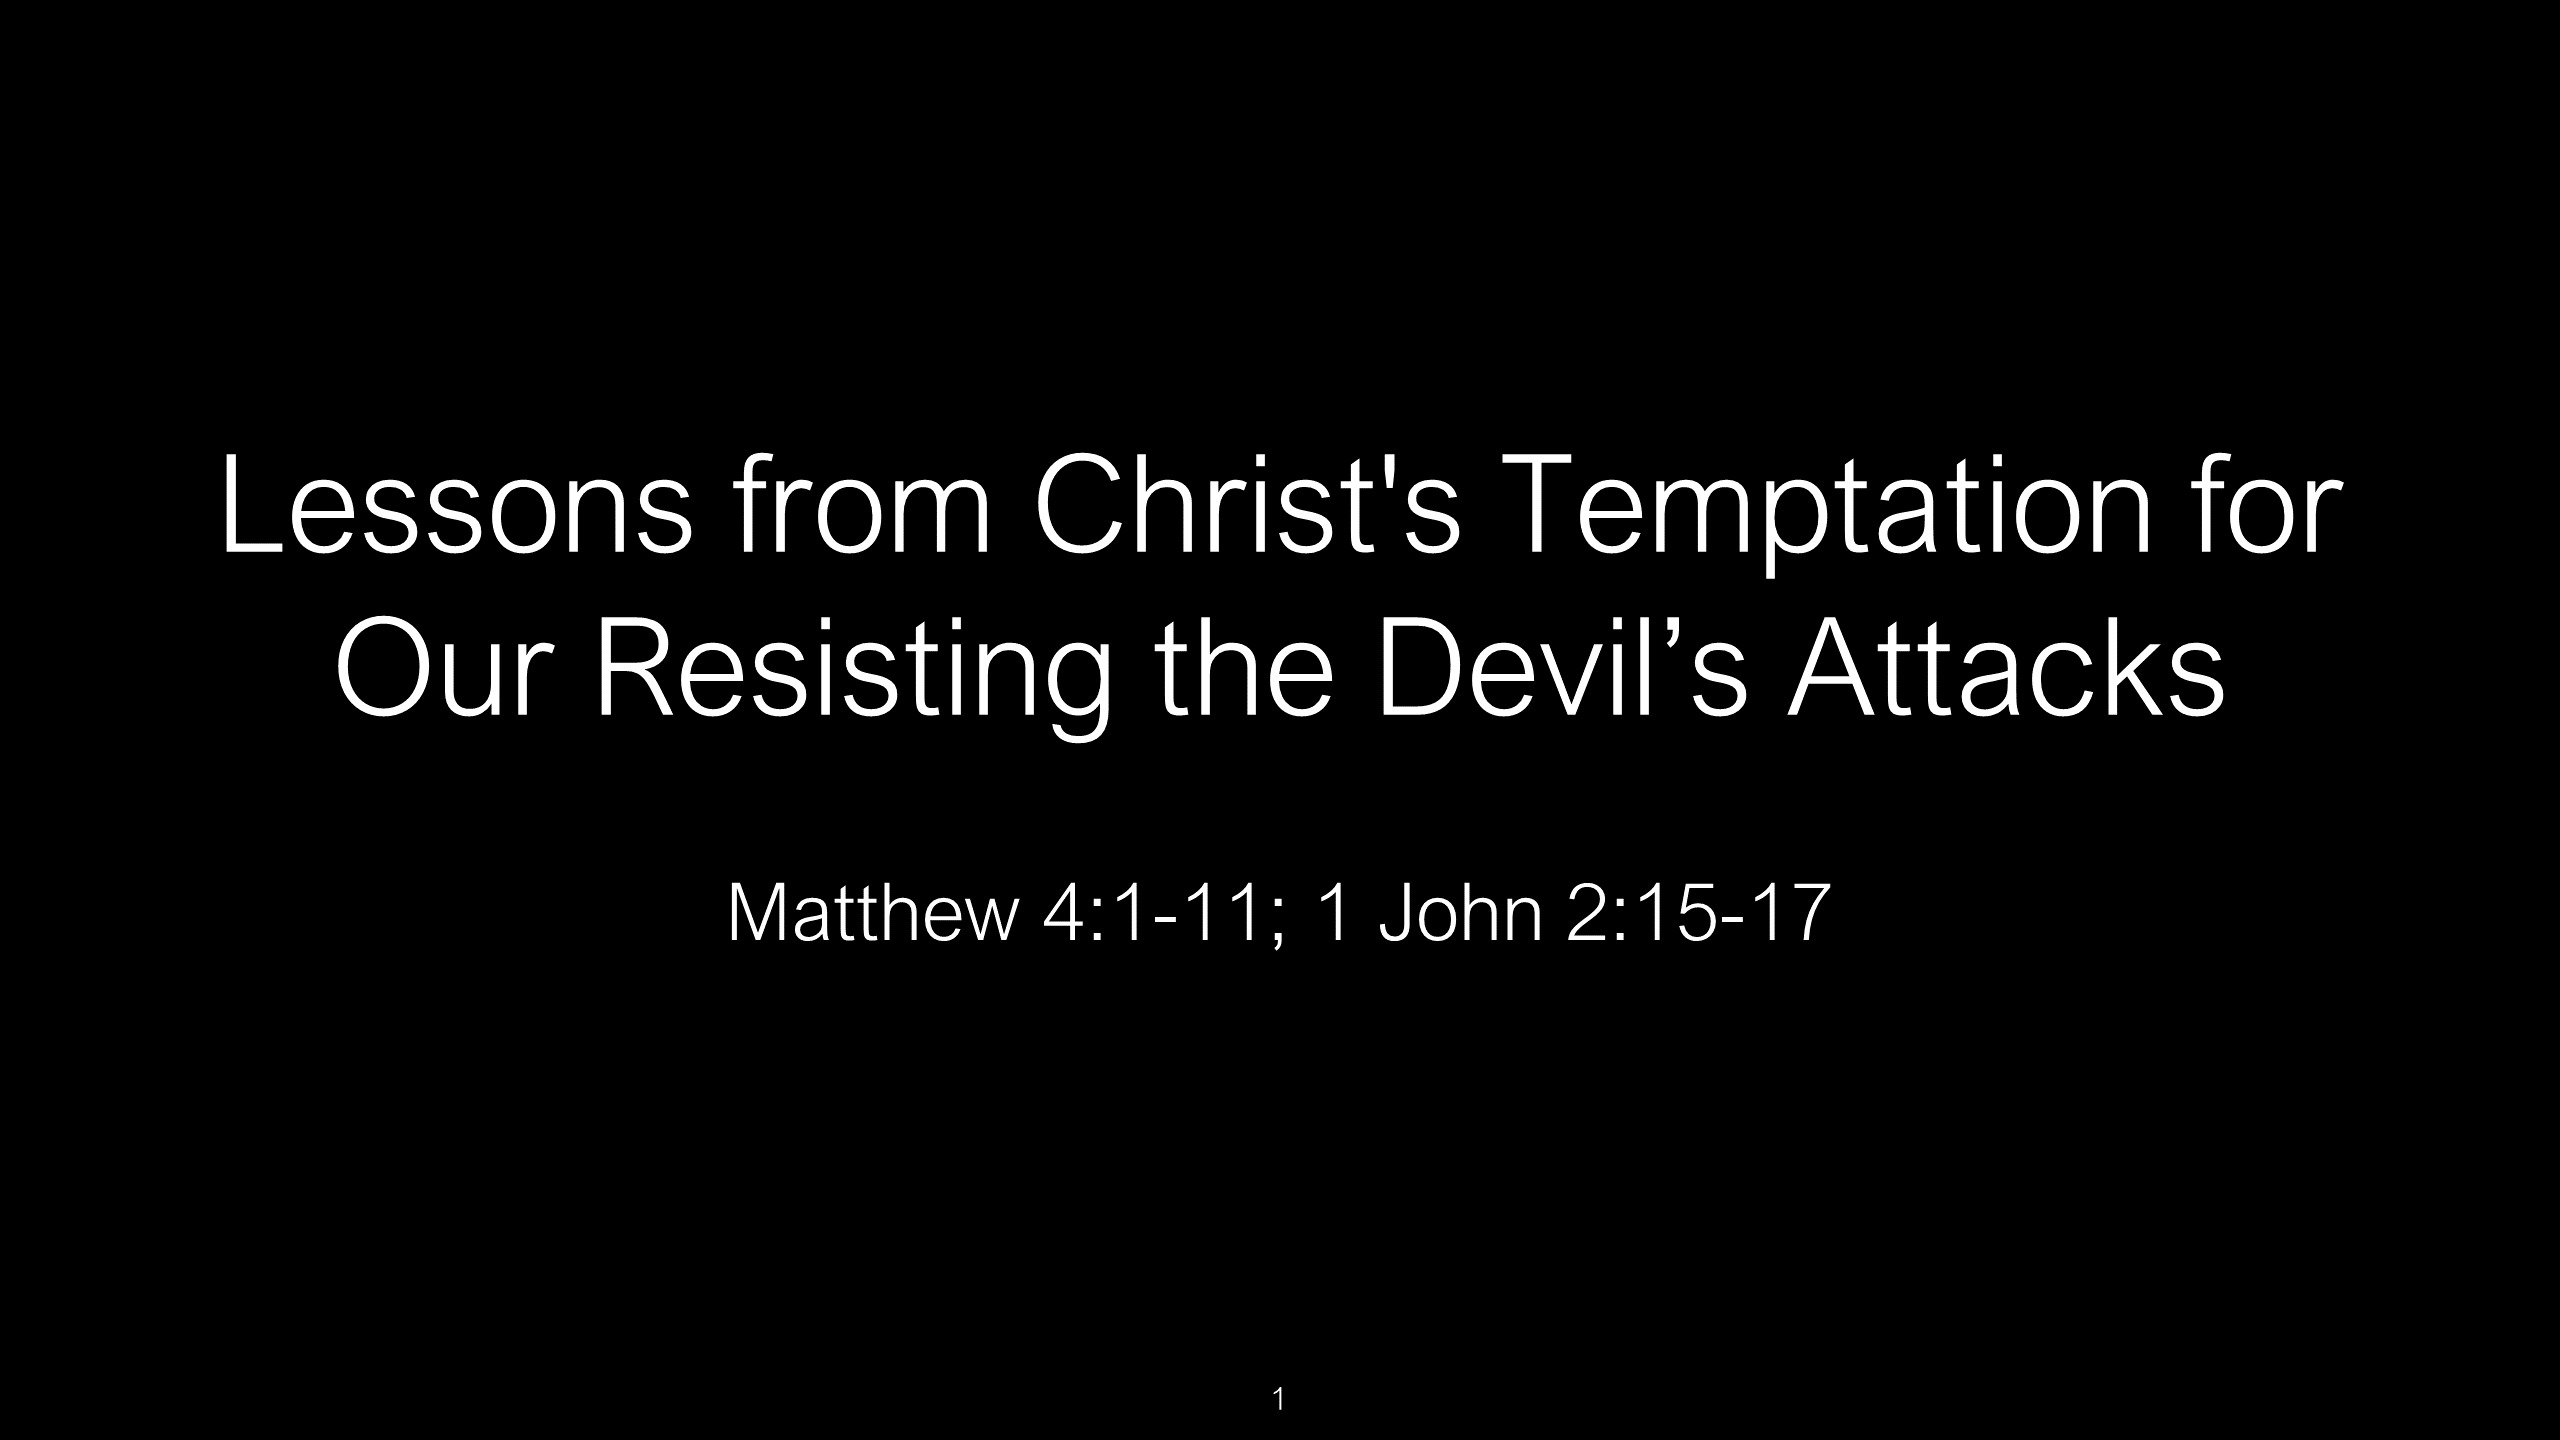 SWS-09 - Lessons from Christ's Temptation for Our Resisting the Devil's Attacks (1)